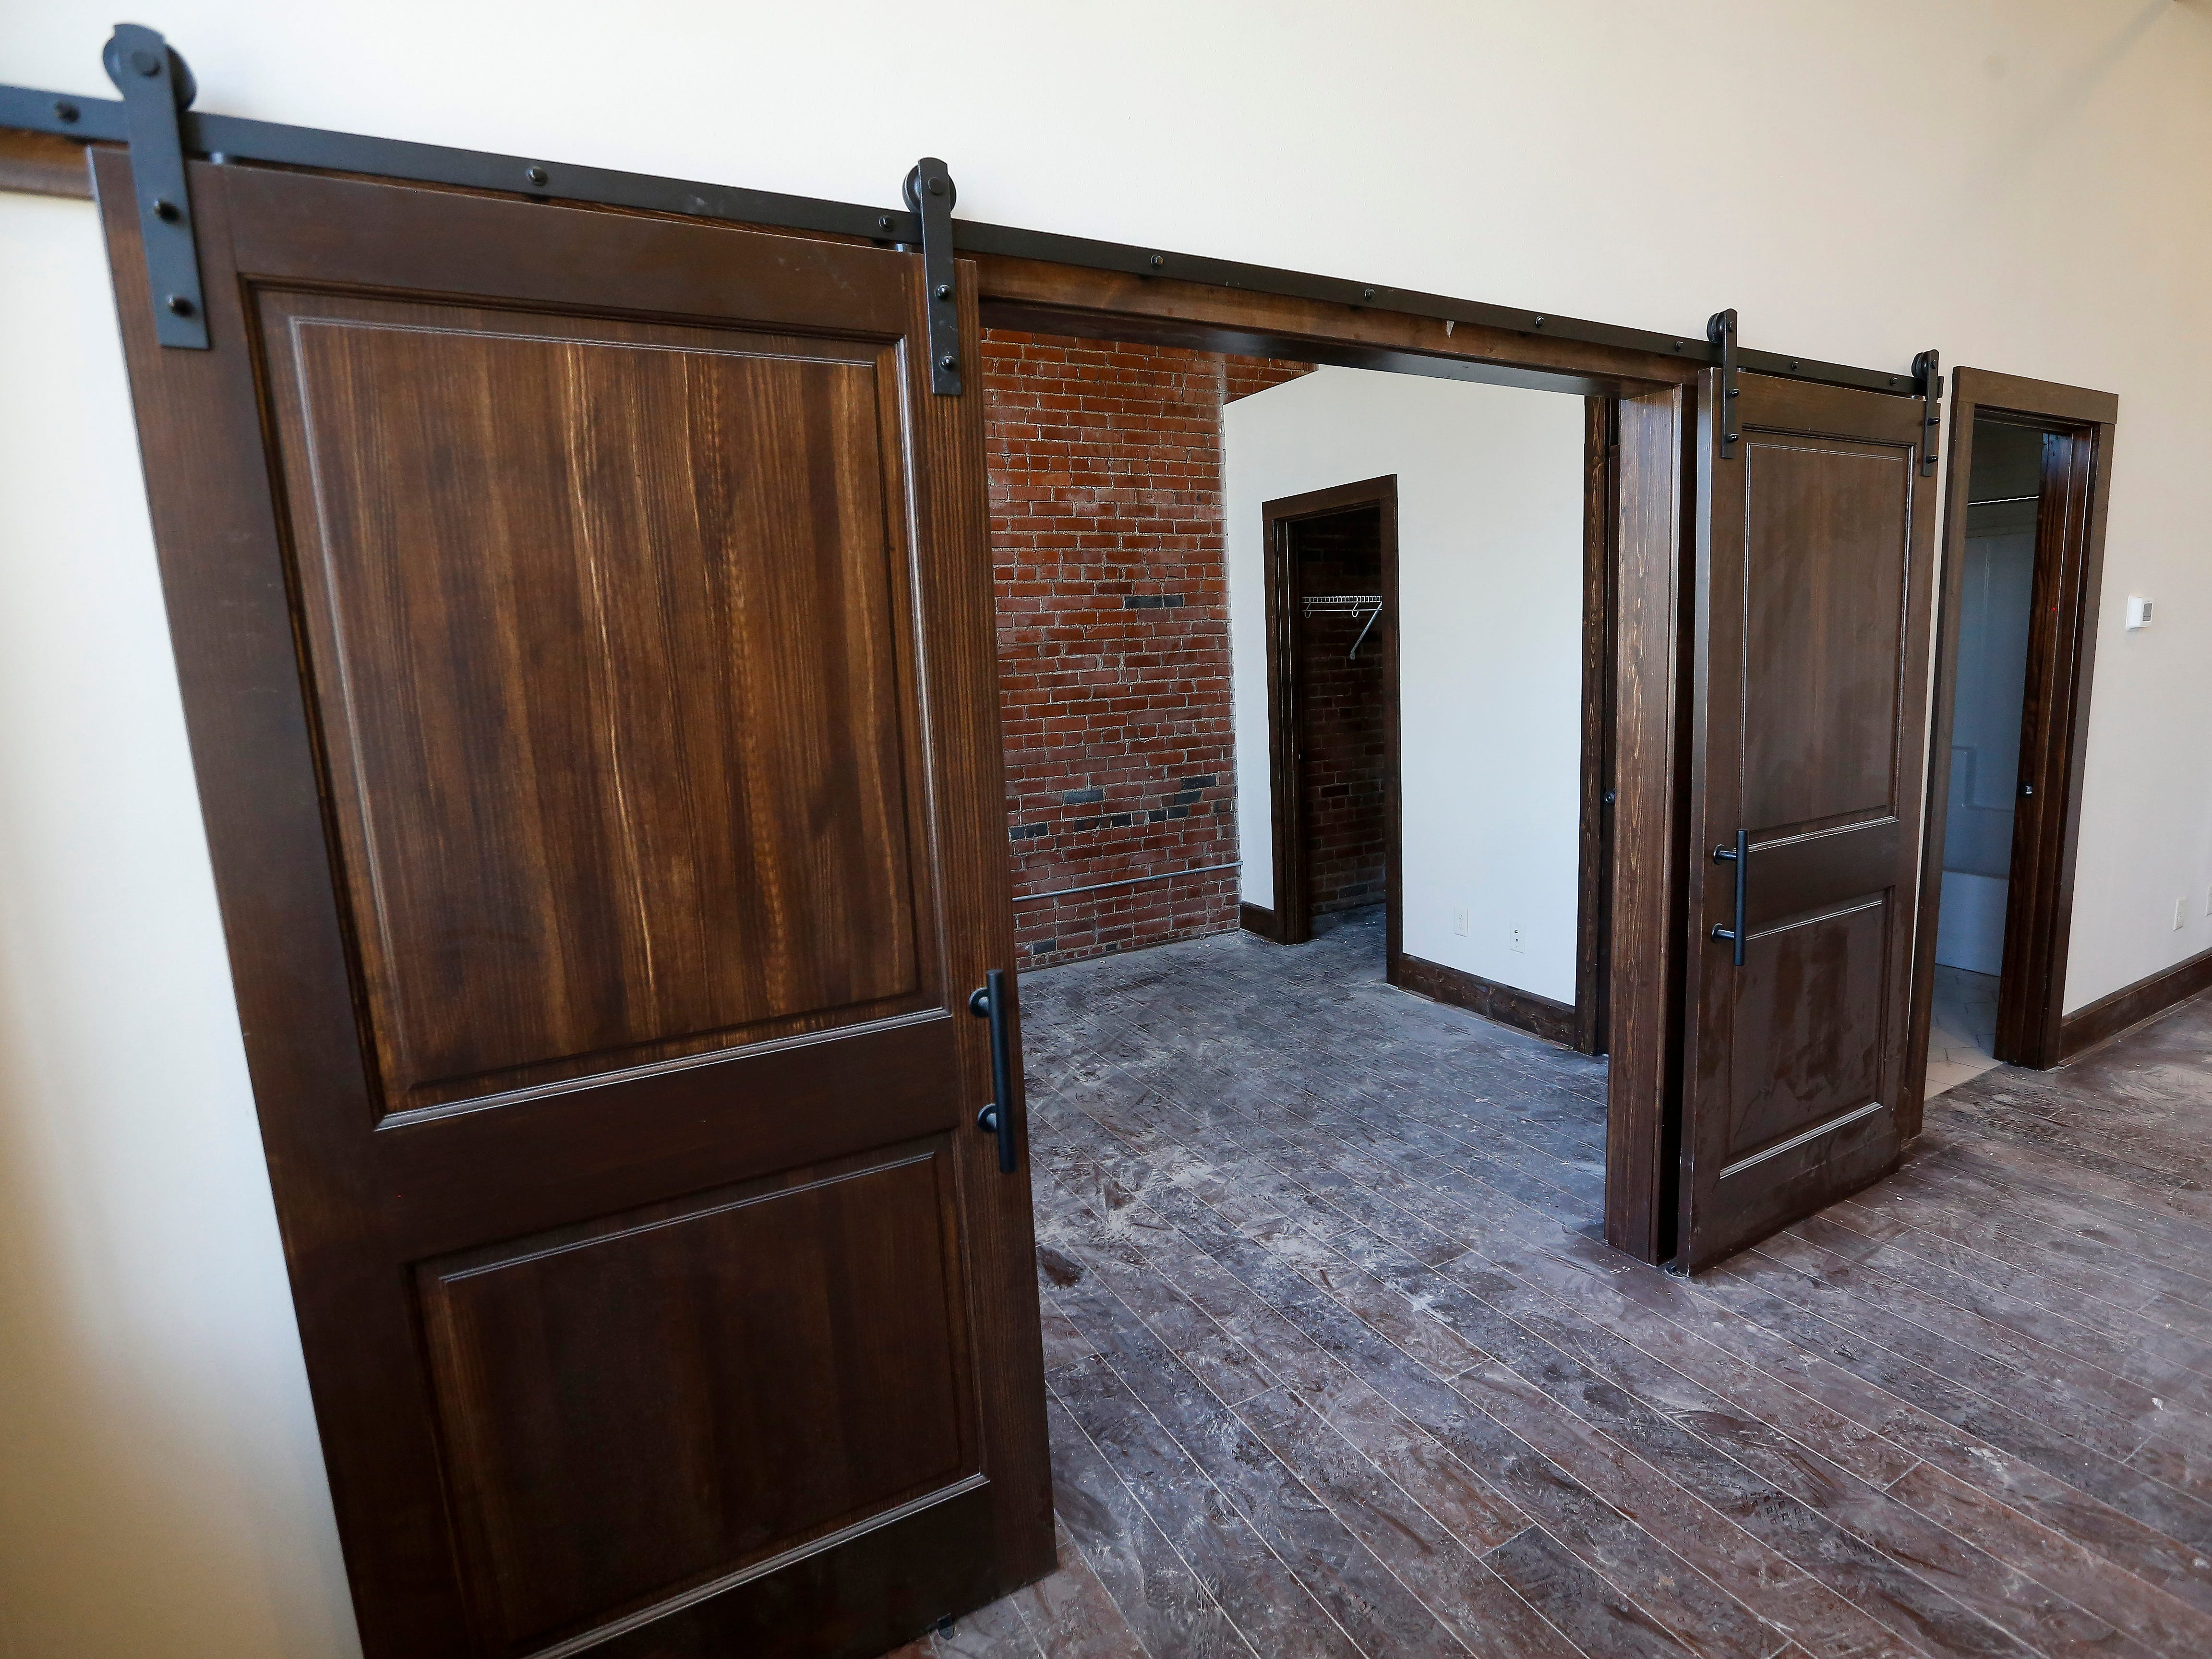 Sliding barn doors open up the space in this apartment on the second floor at the Bailey School Lofts on Central Street near Campbell Avenue.